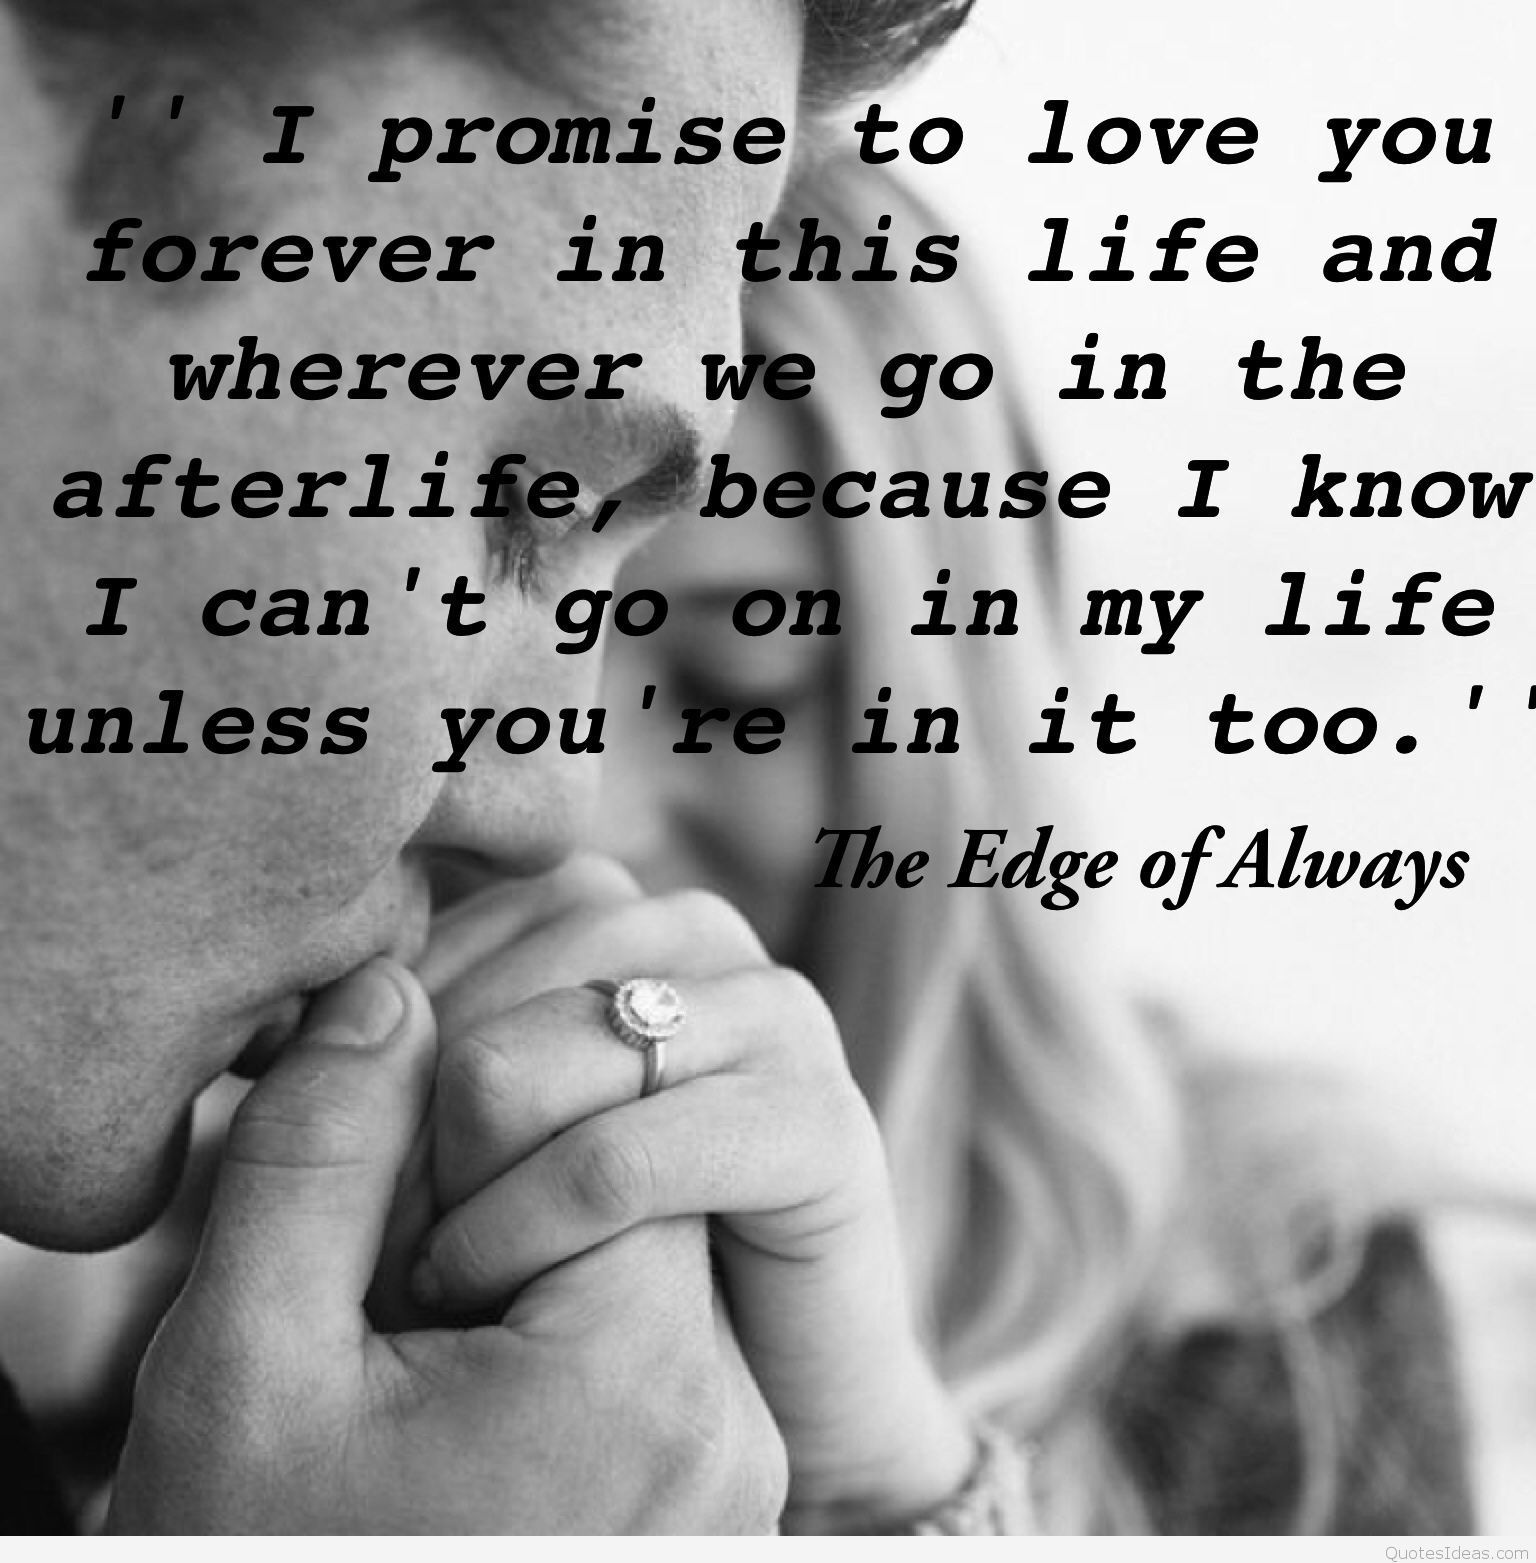 Free Love Quotes And Sayings For Him Pintopgsl On Love Quotes For Boyfriend  Pinterest  Boyfriends